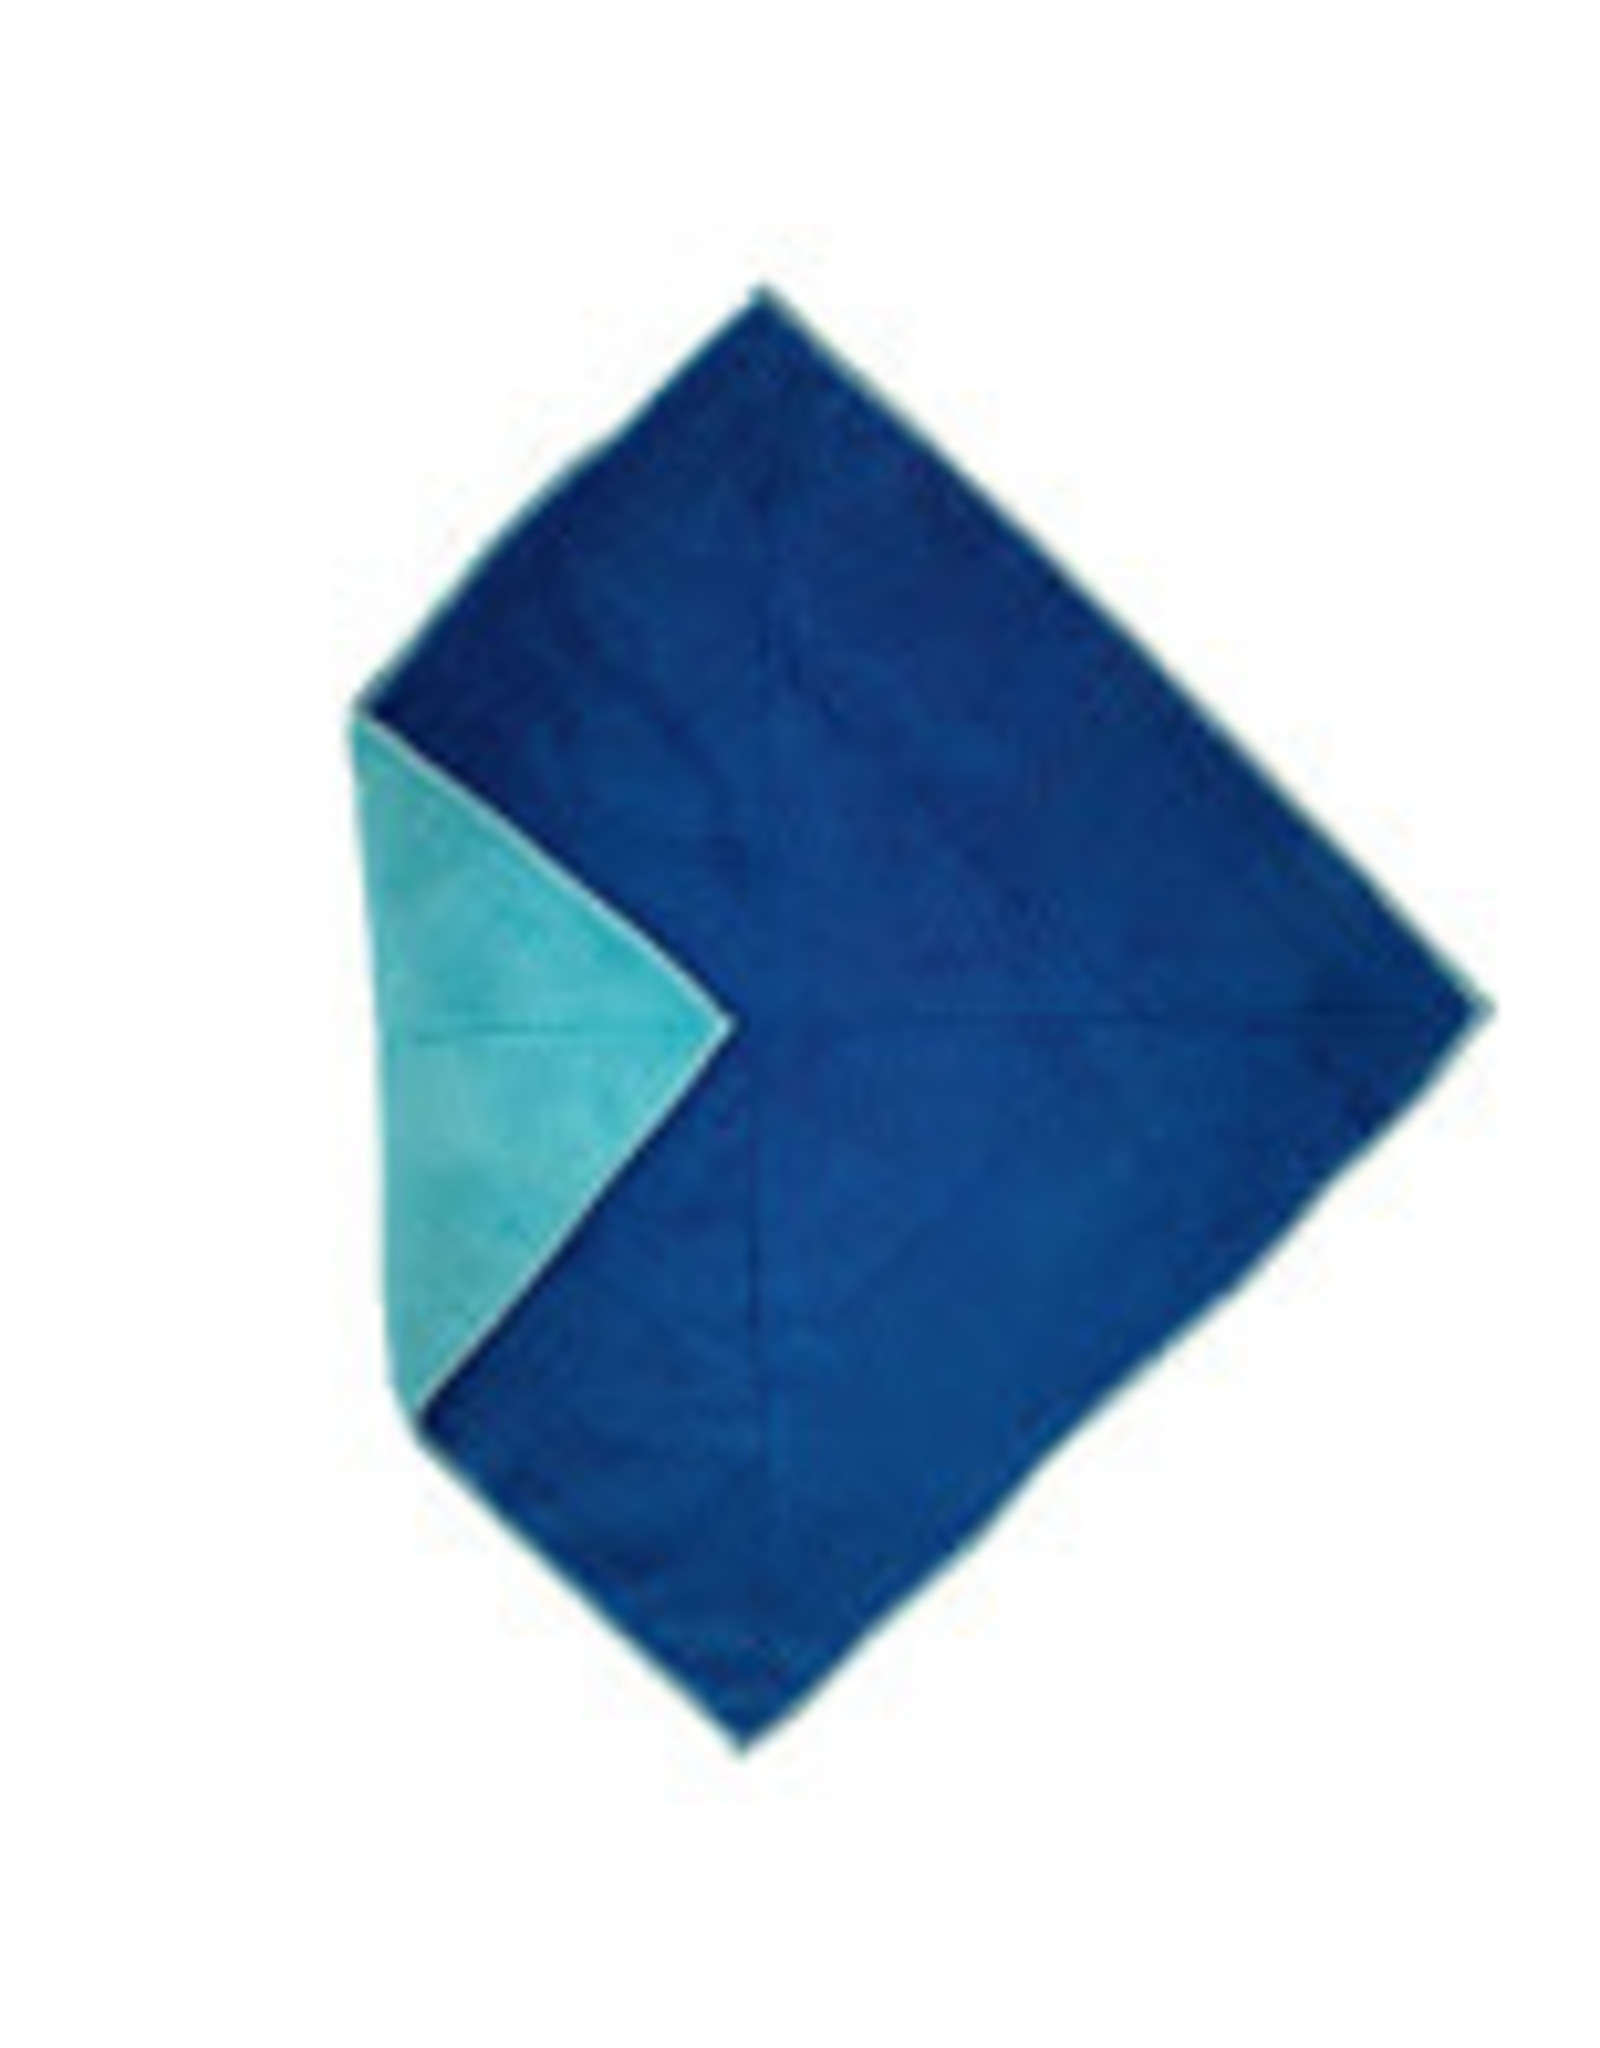 Flipper Microtex duo 30x30 blauw/turquoise